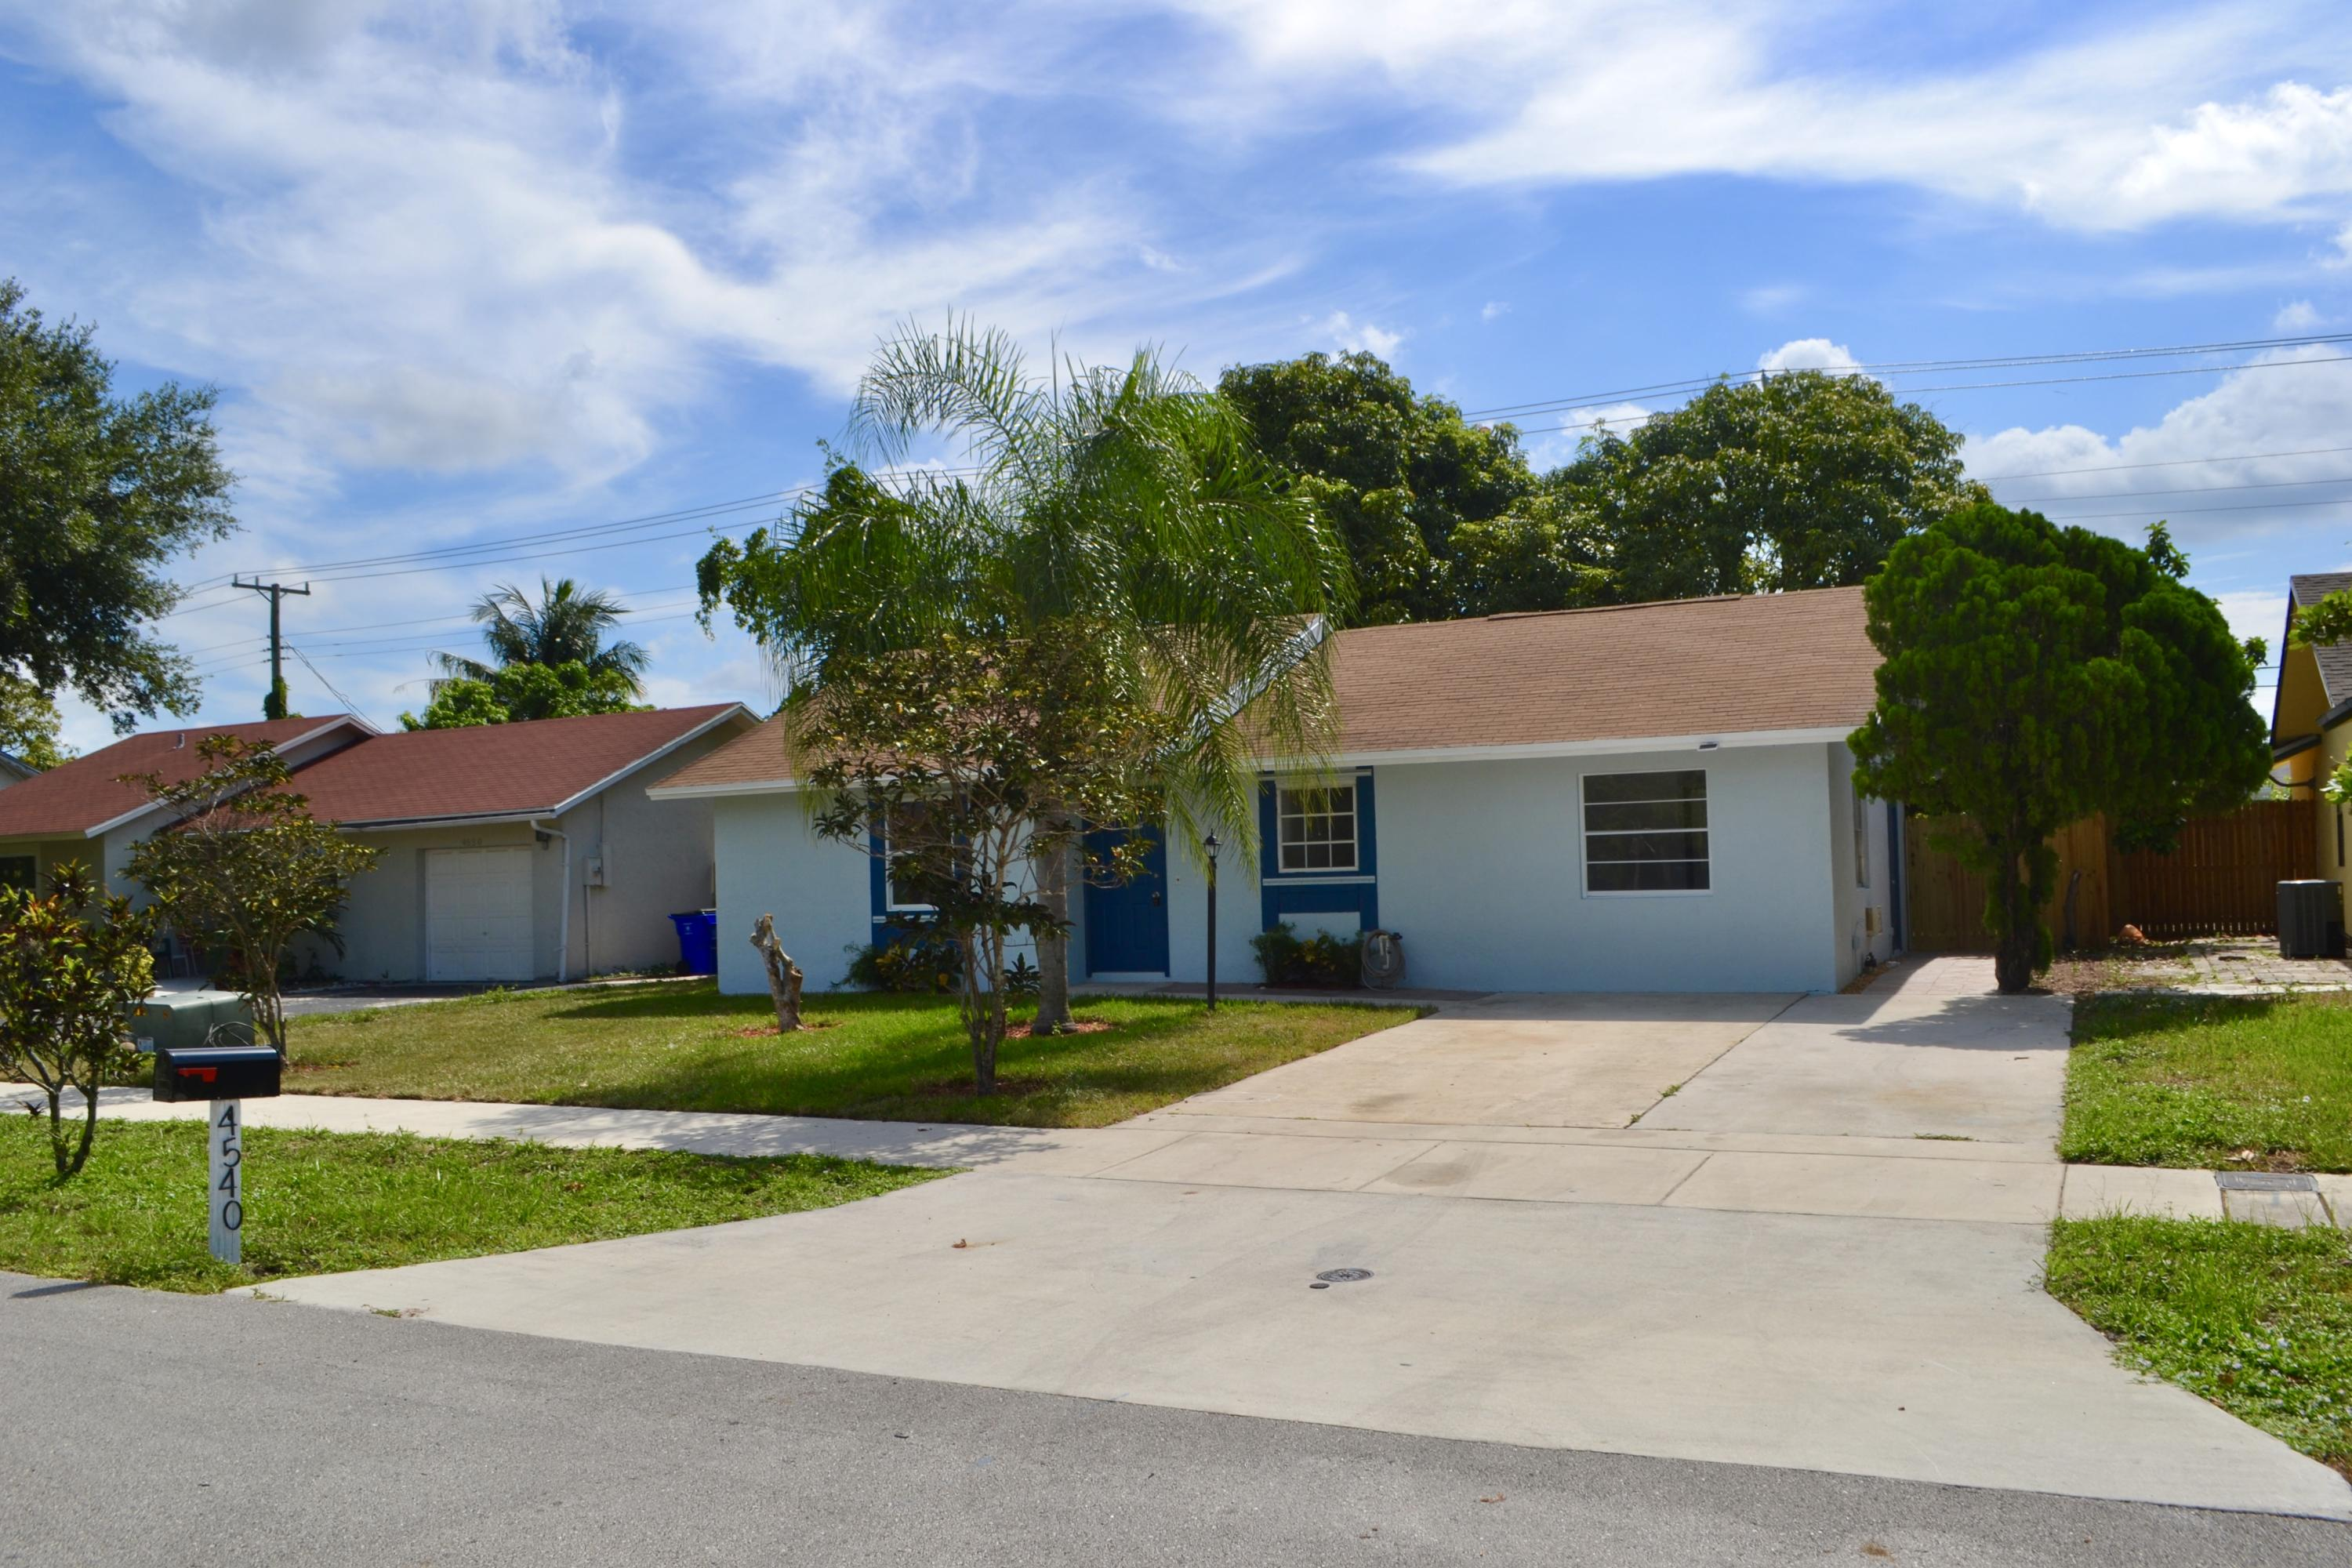 Home for sale in Lemar Gardens Deerfield Beach Florida